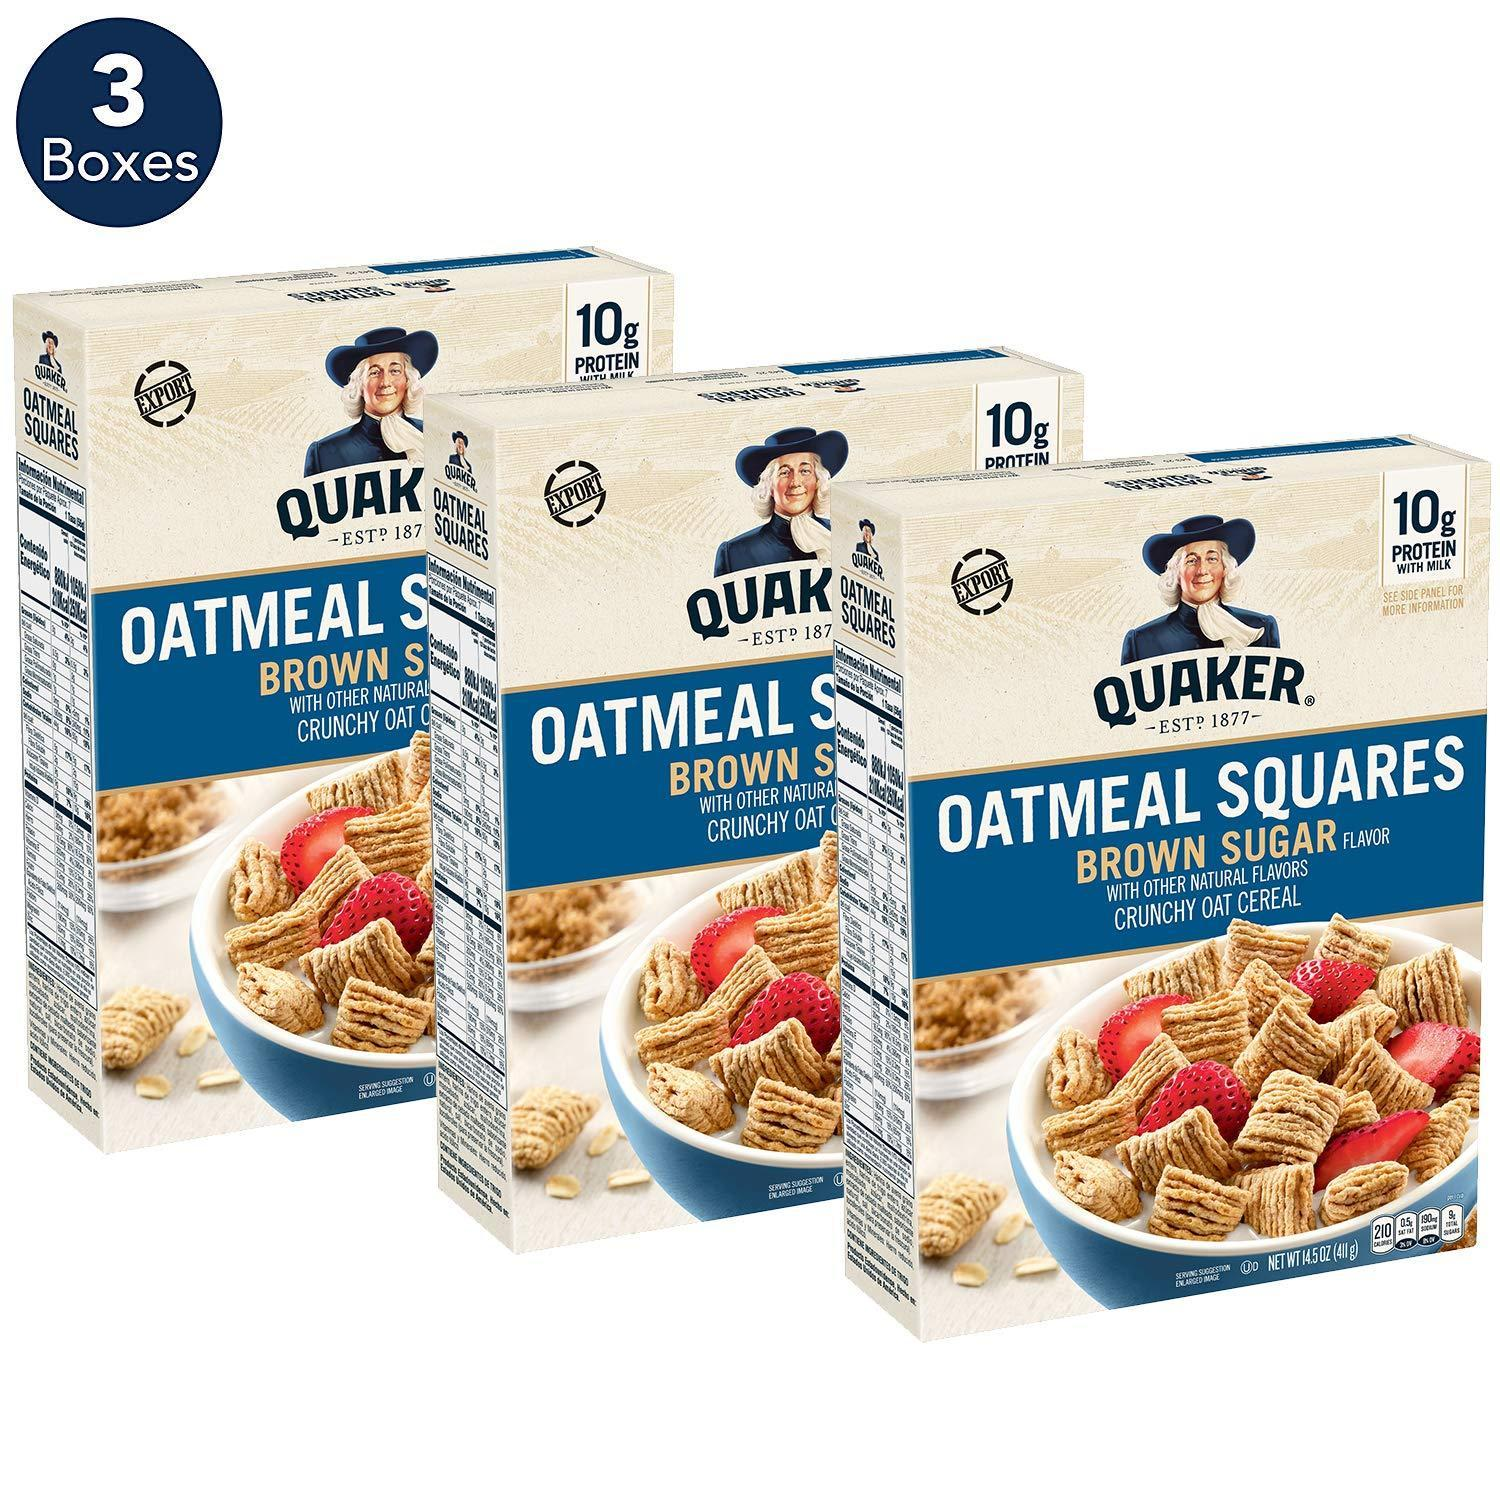 3-Count 14.5oz Quaker Oatmeal Squares Cereal (Brown Sugar)